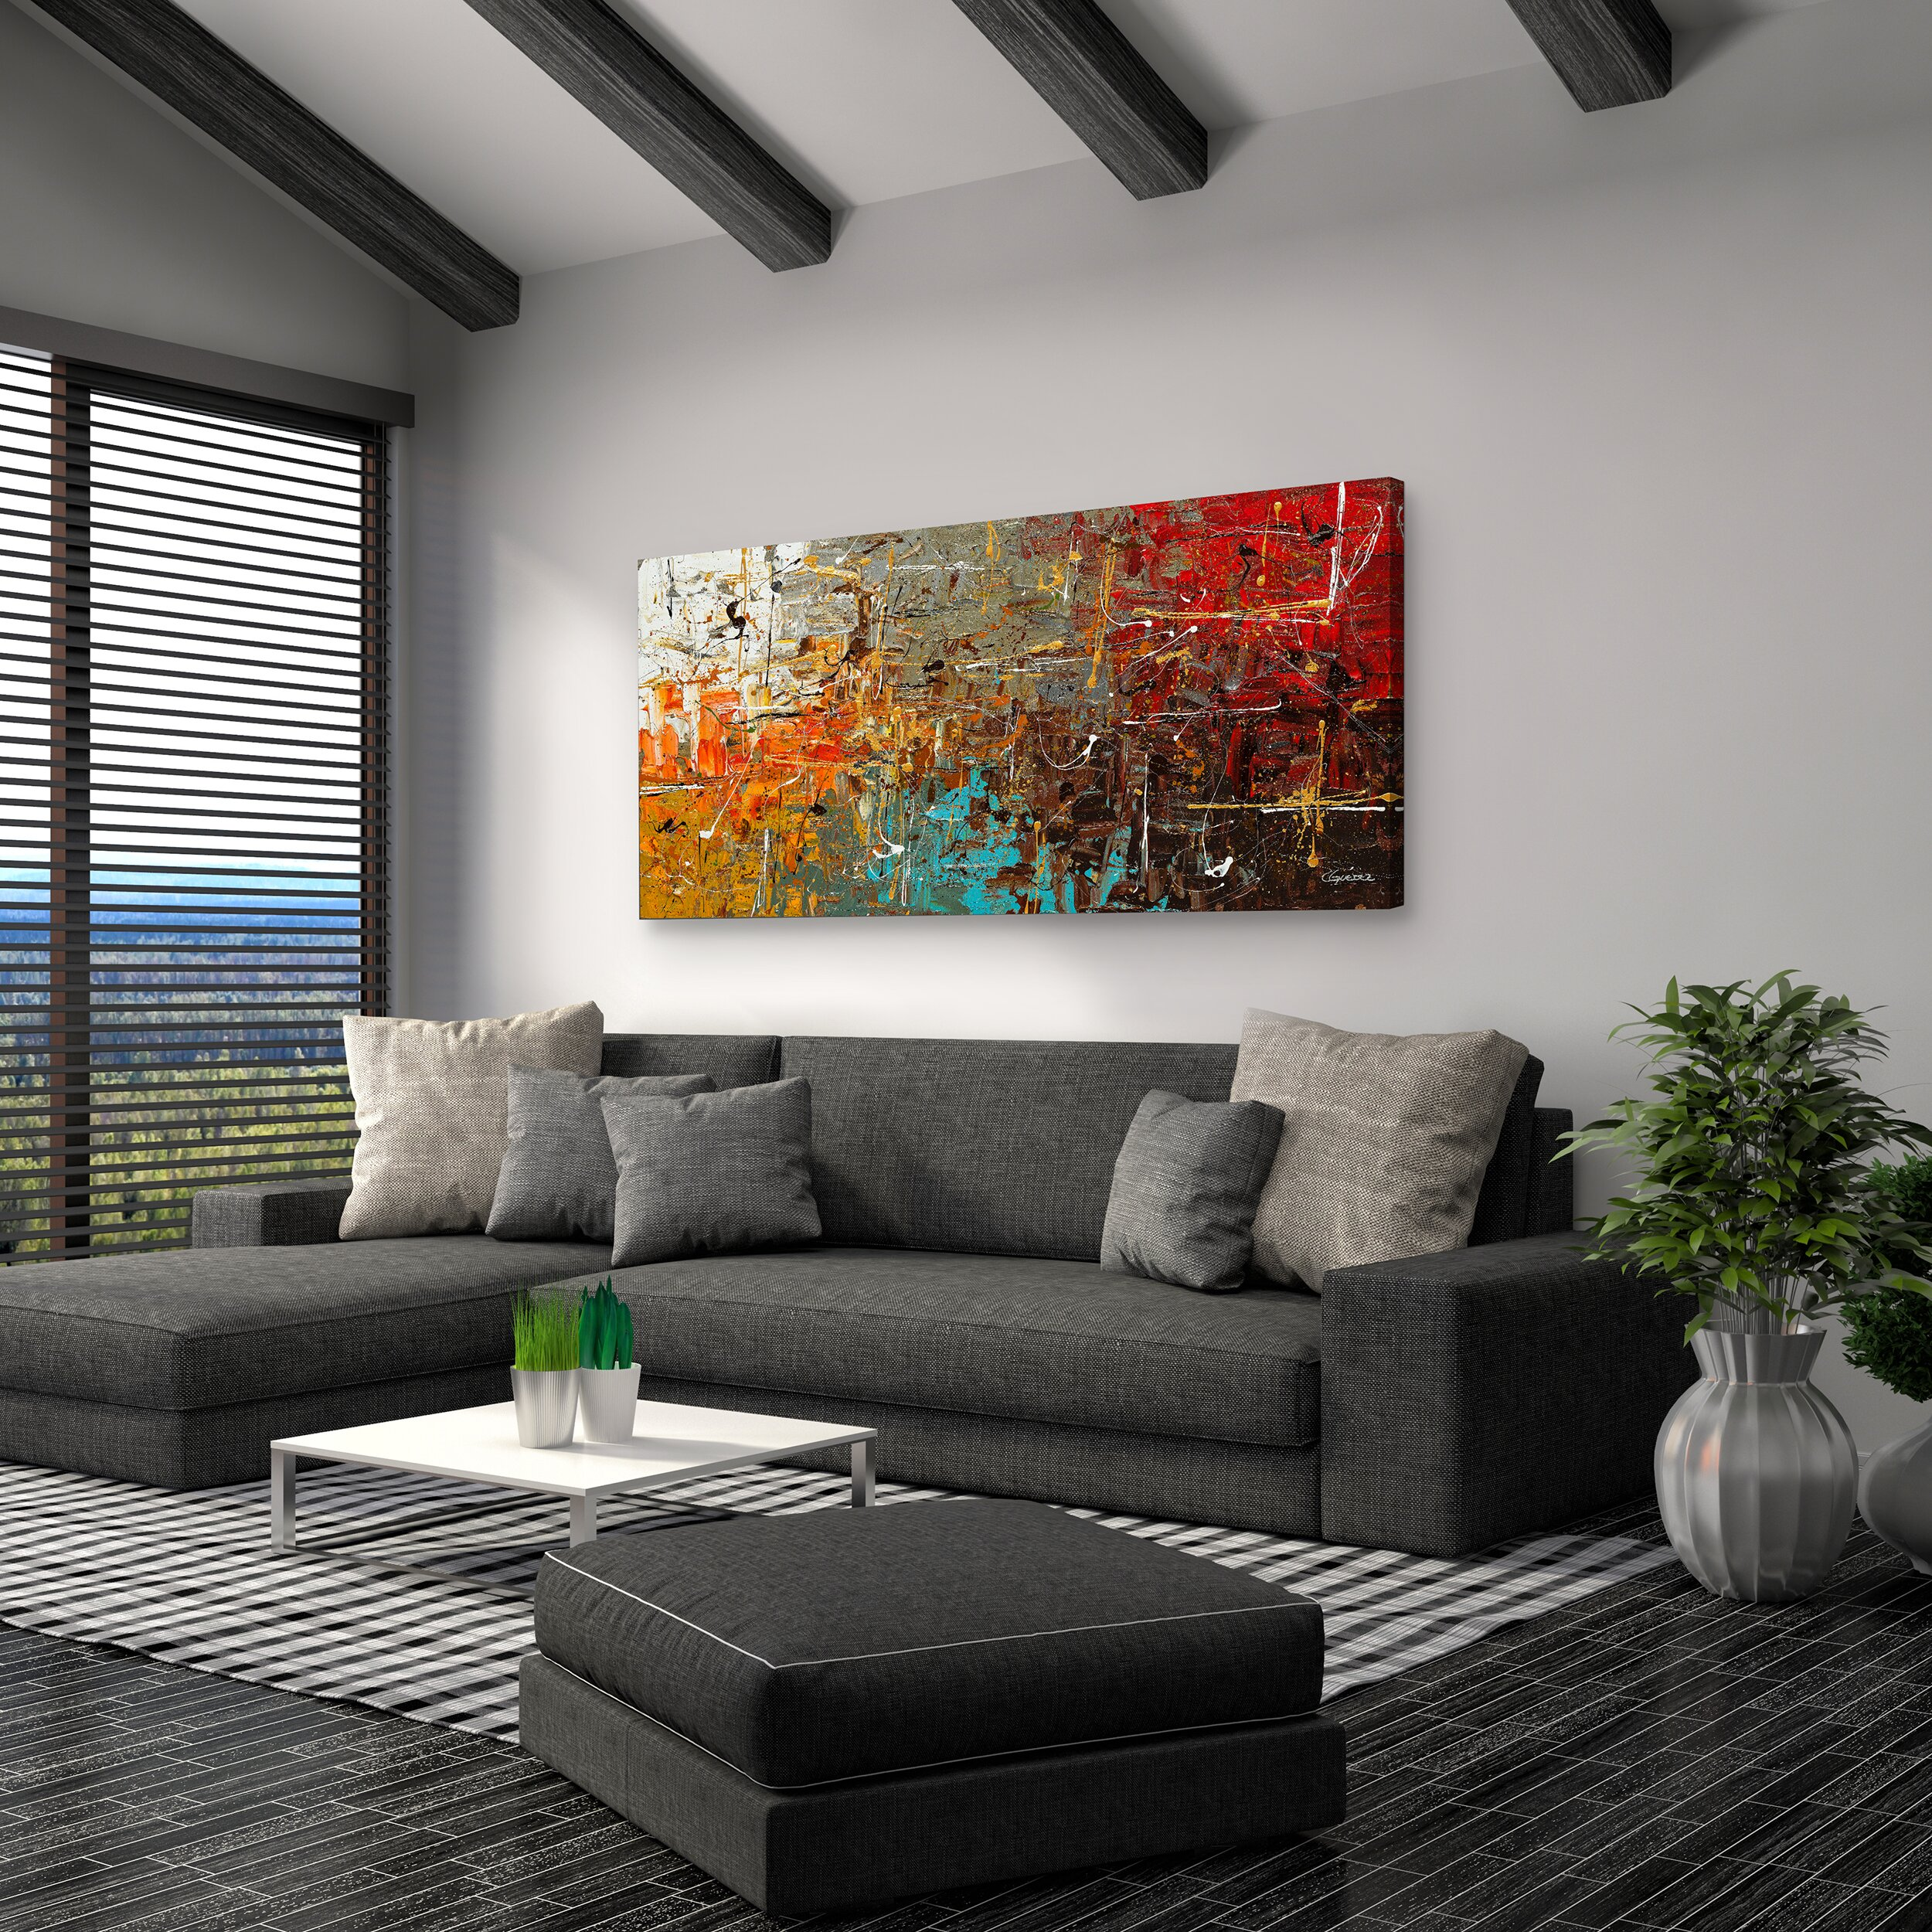 Artefx Decor Safe And Sound By Carmen Guedez Painting Print On Canvas Reviews Wayfair